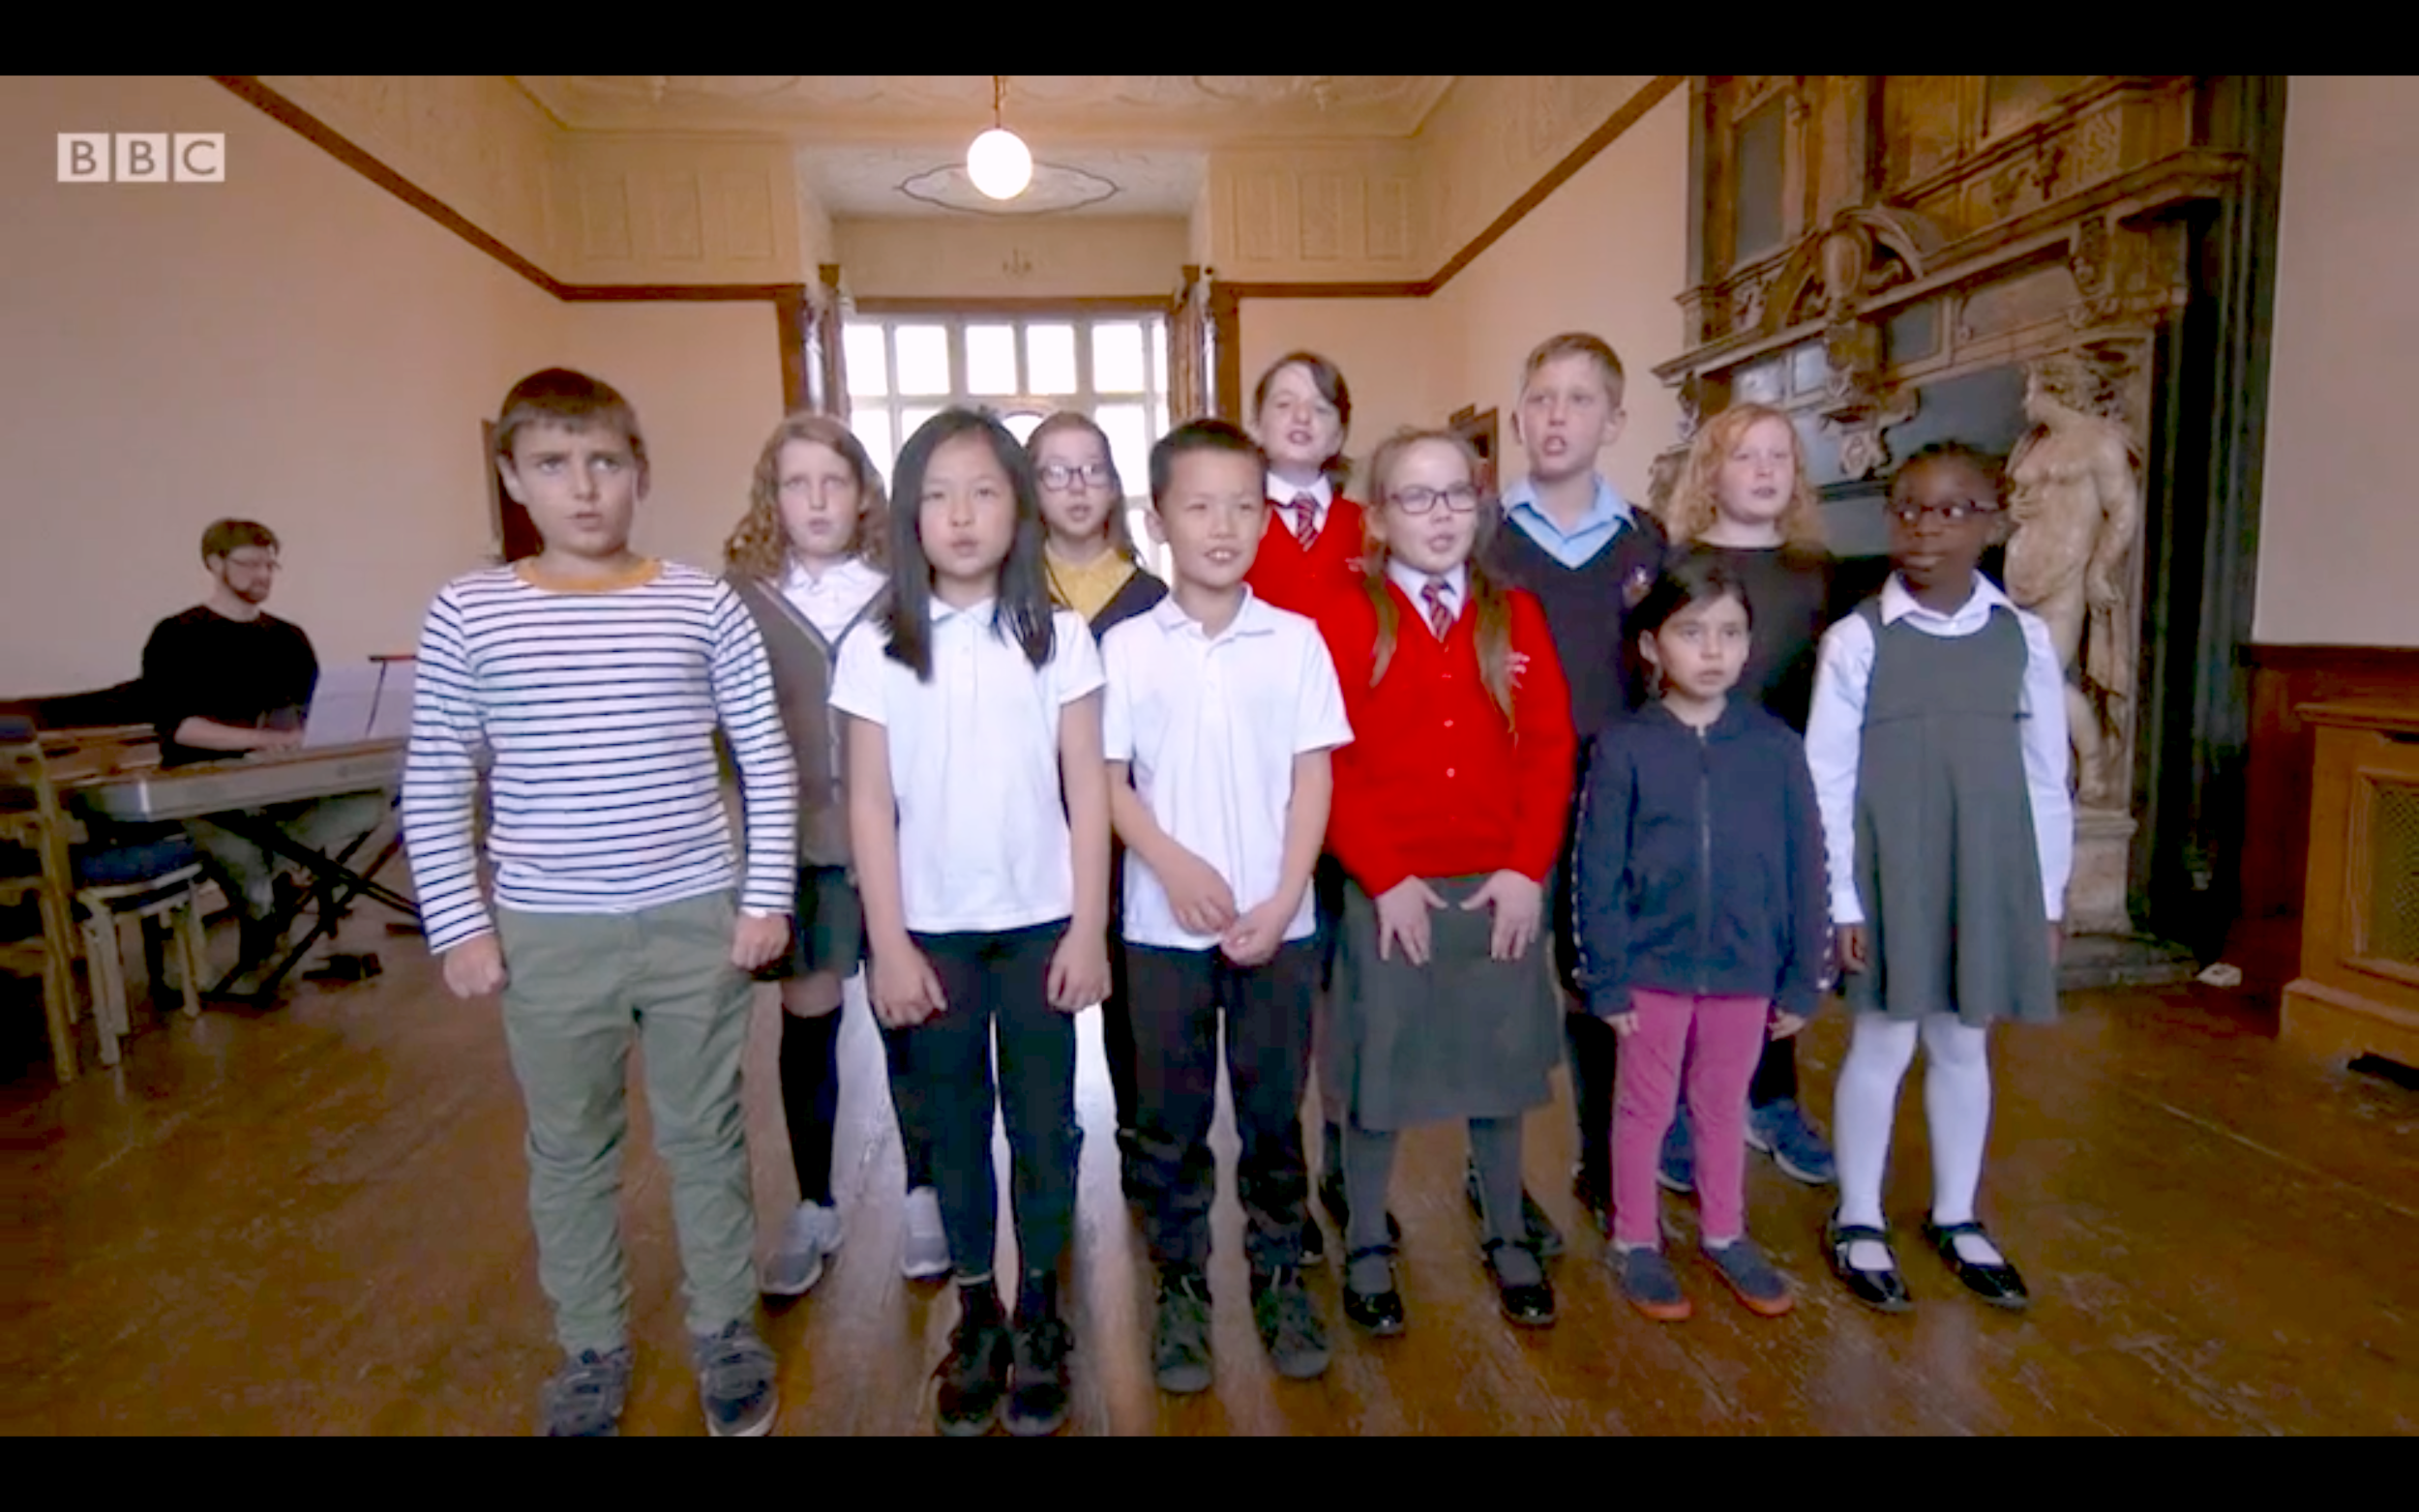 Greenwich Music School students singing for BBC's The One Show